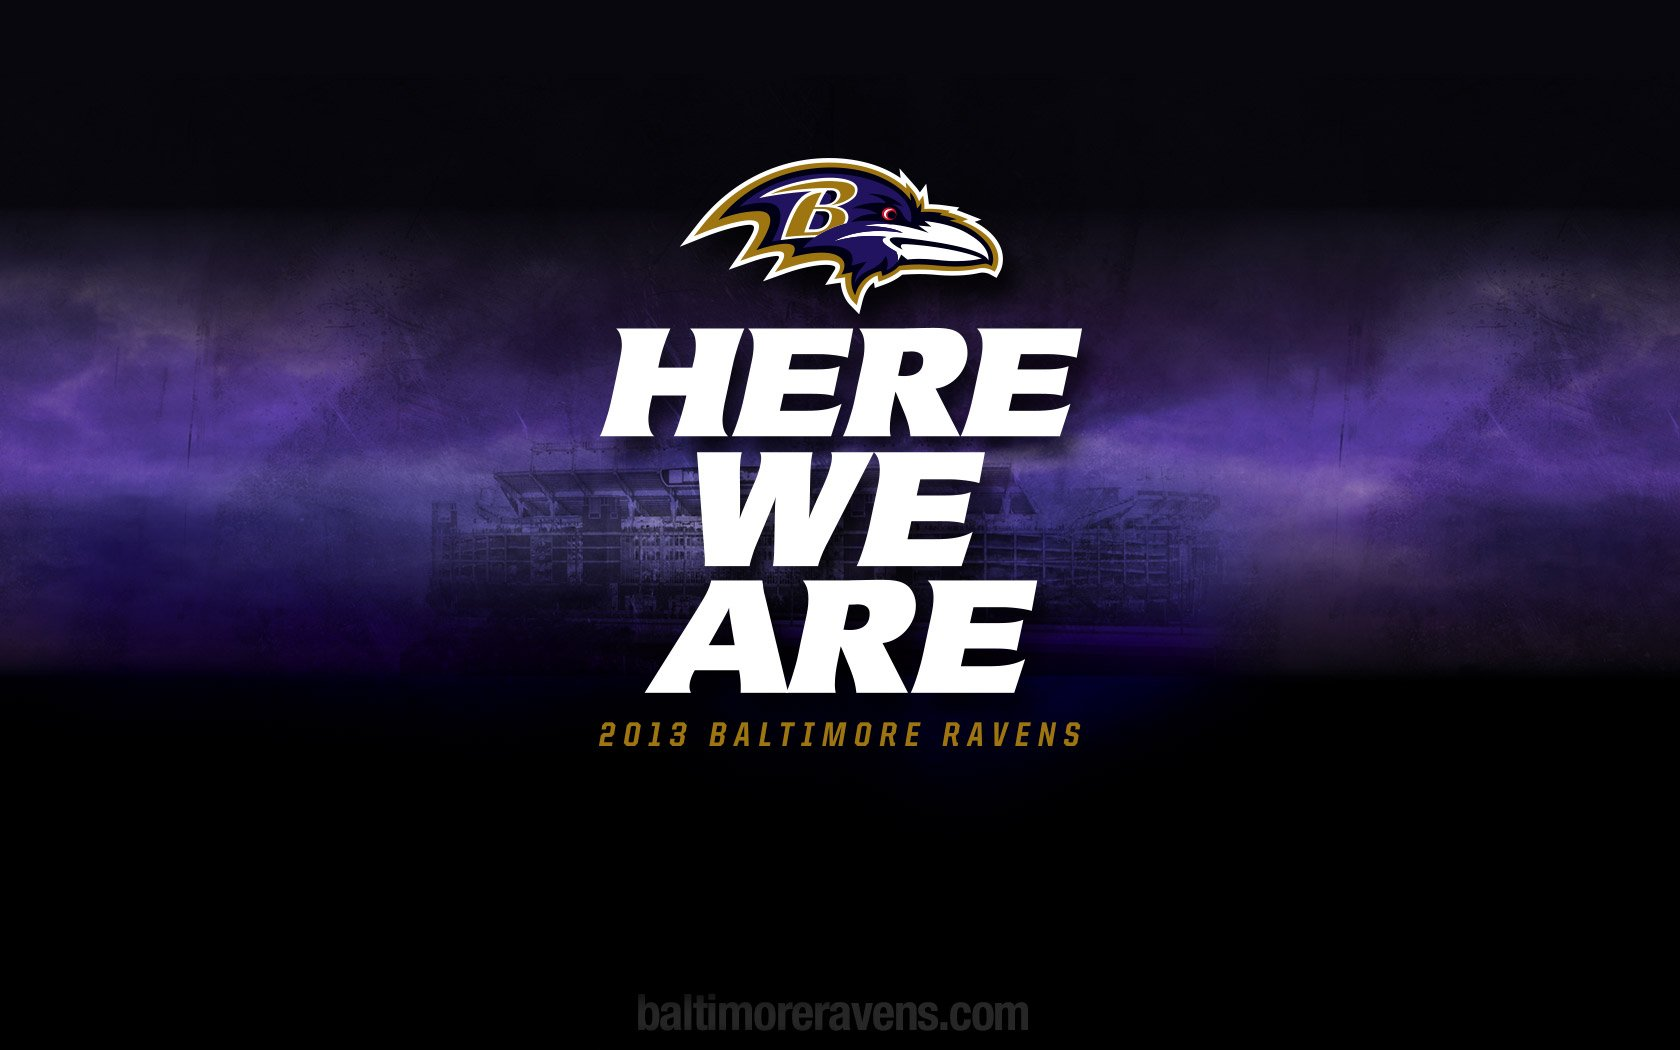 Hope you like this Baltimore Ravens wallpaper HD background as much as 1680x1050